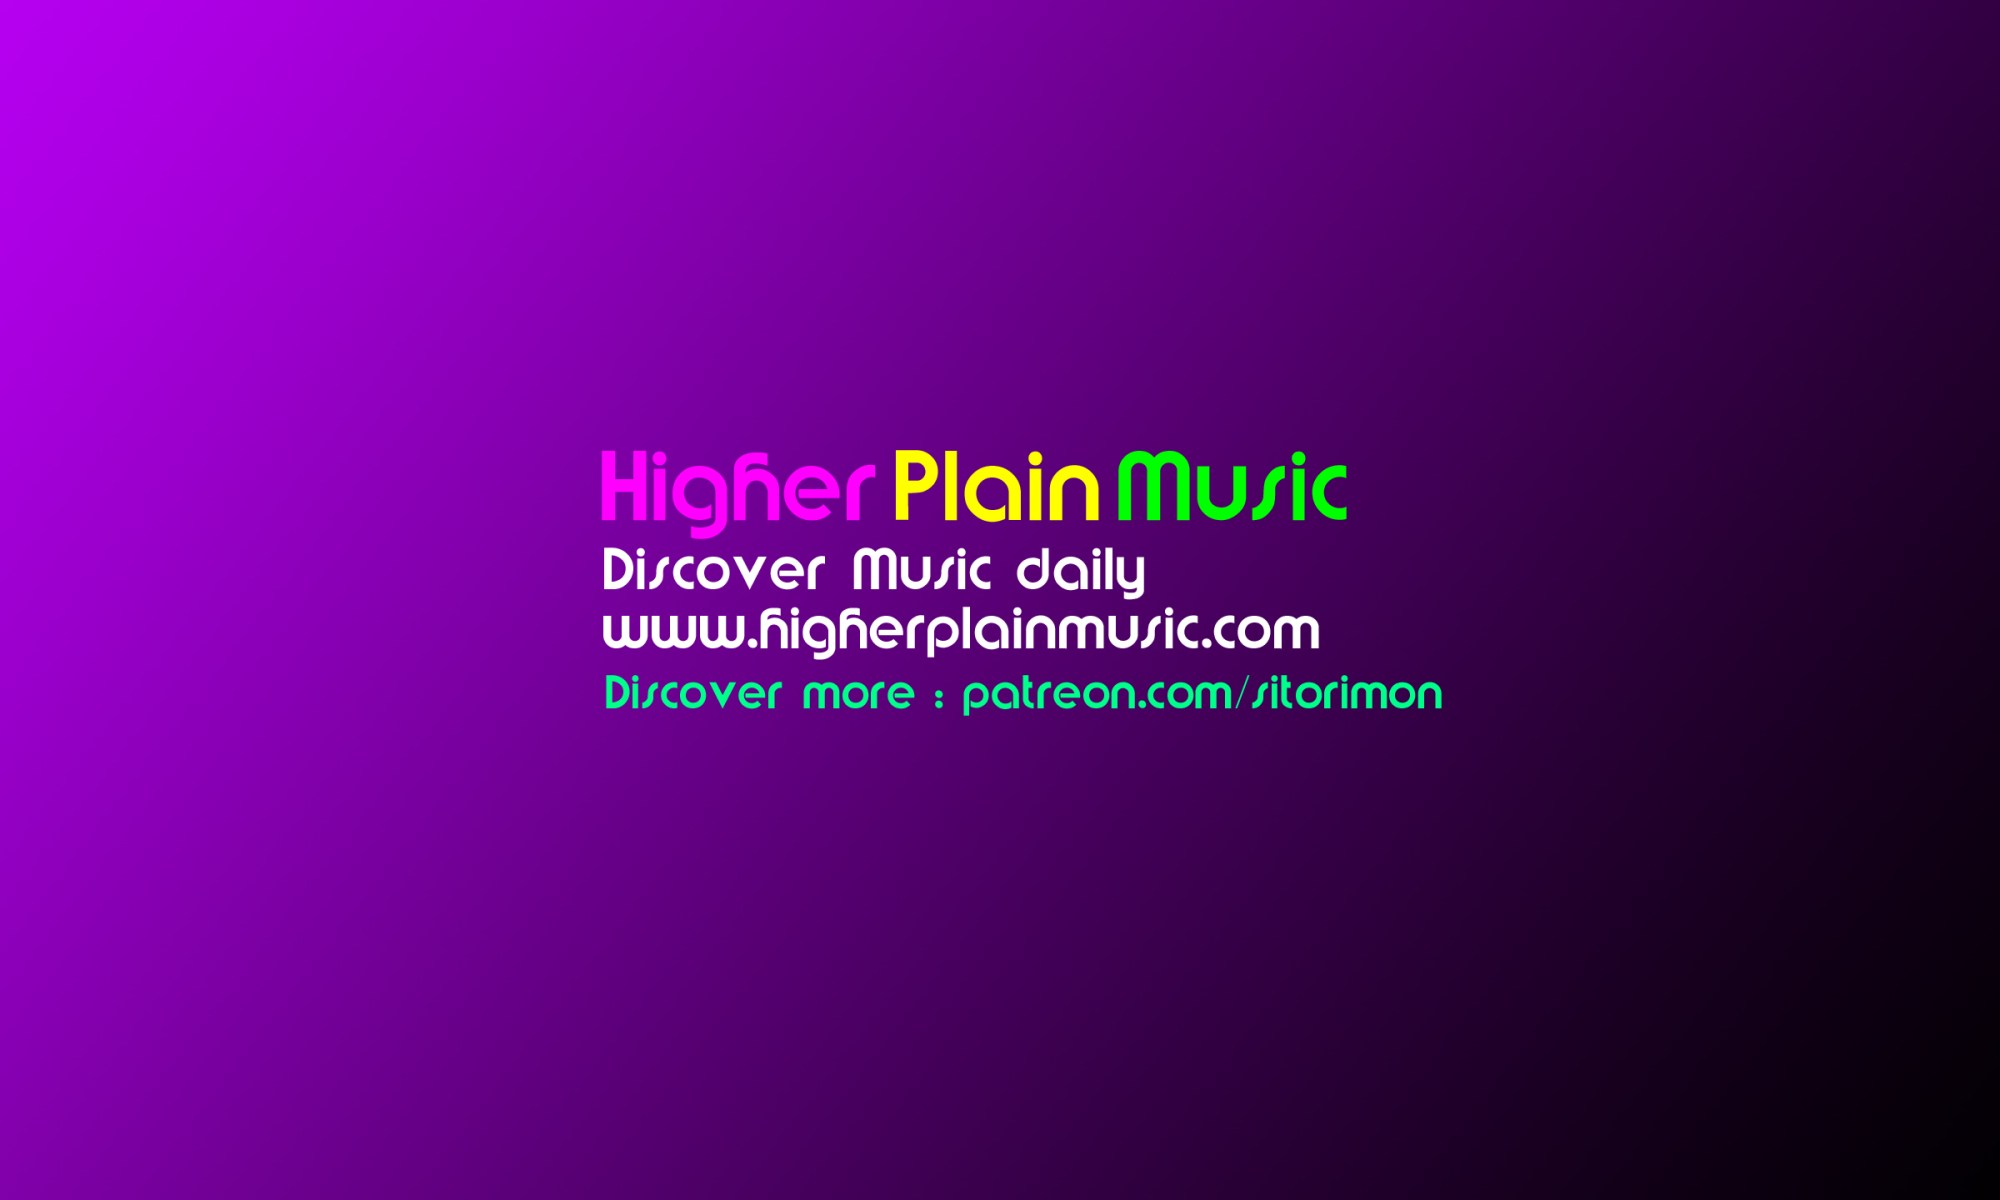 Higher Plain Music